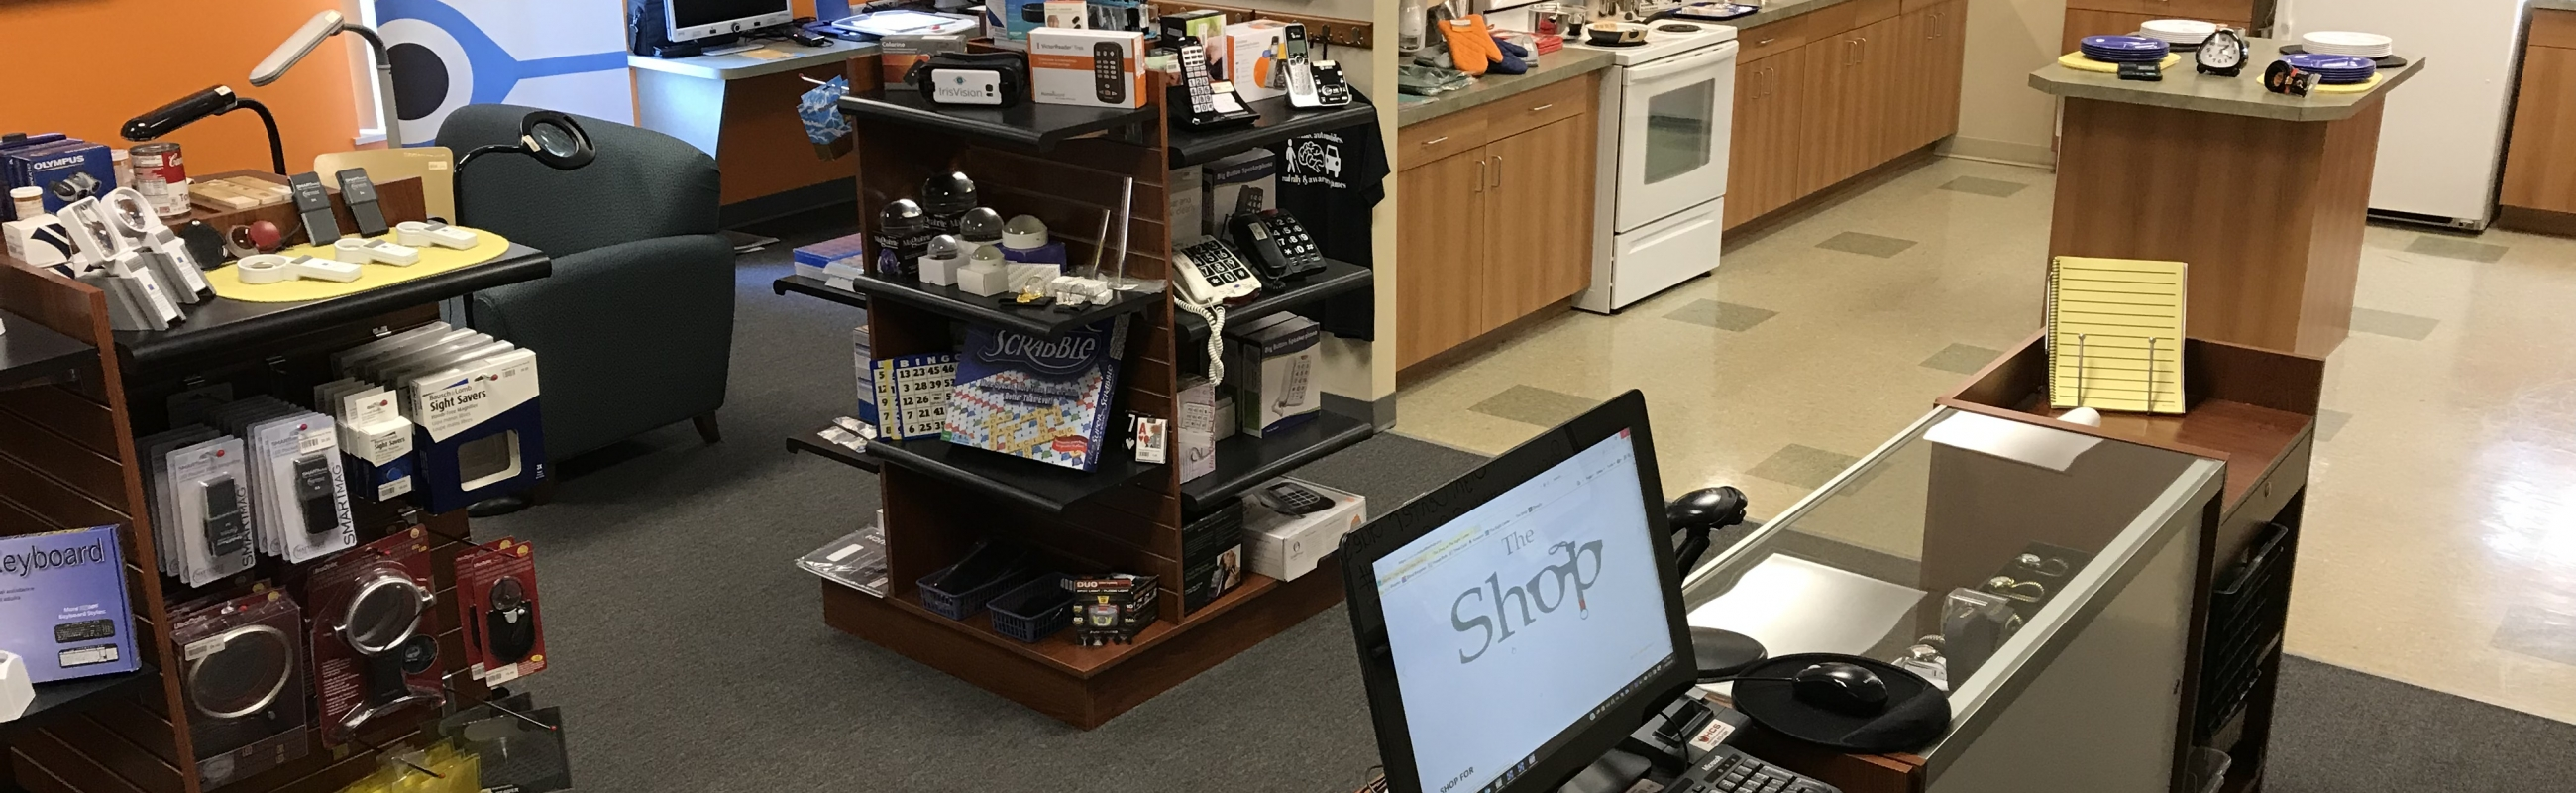 Shop Online - The Shop at The Sight Center